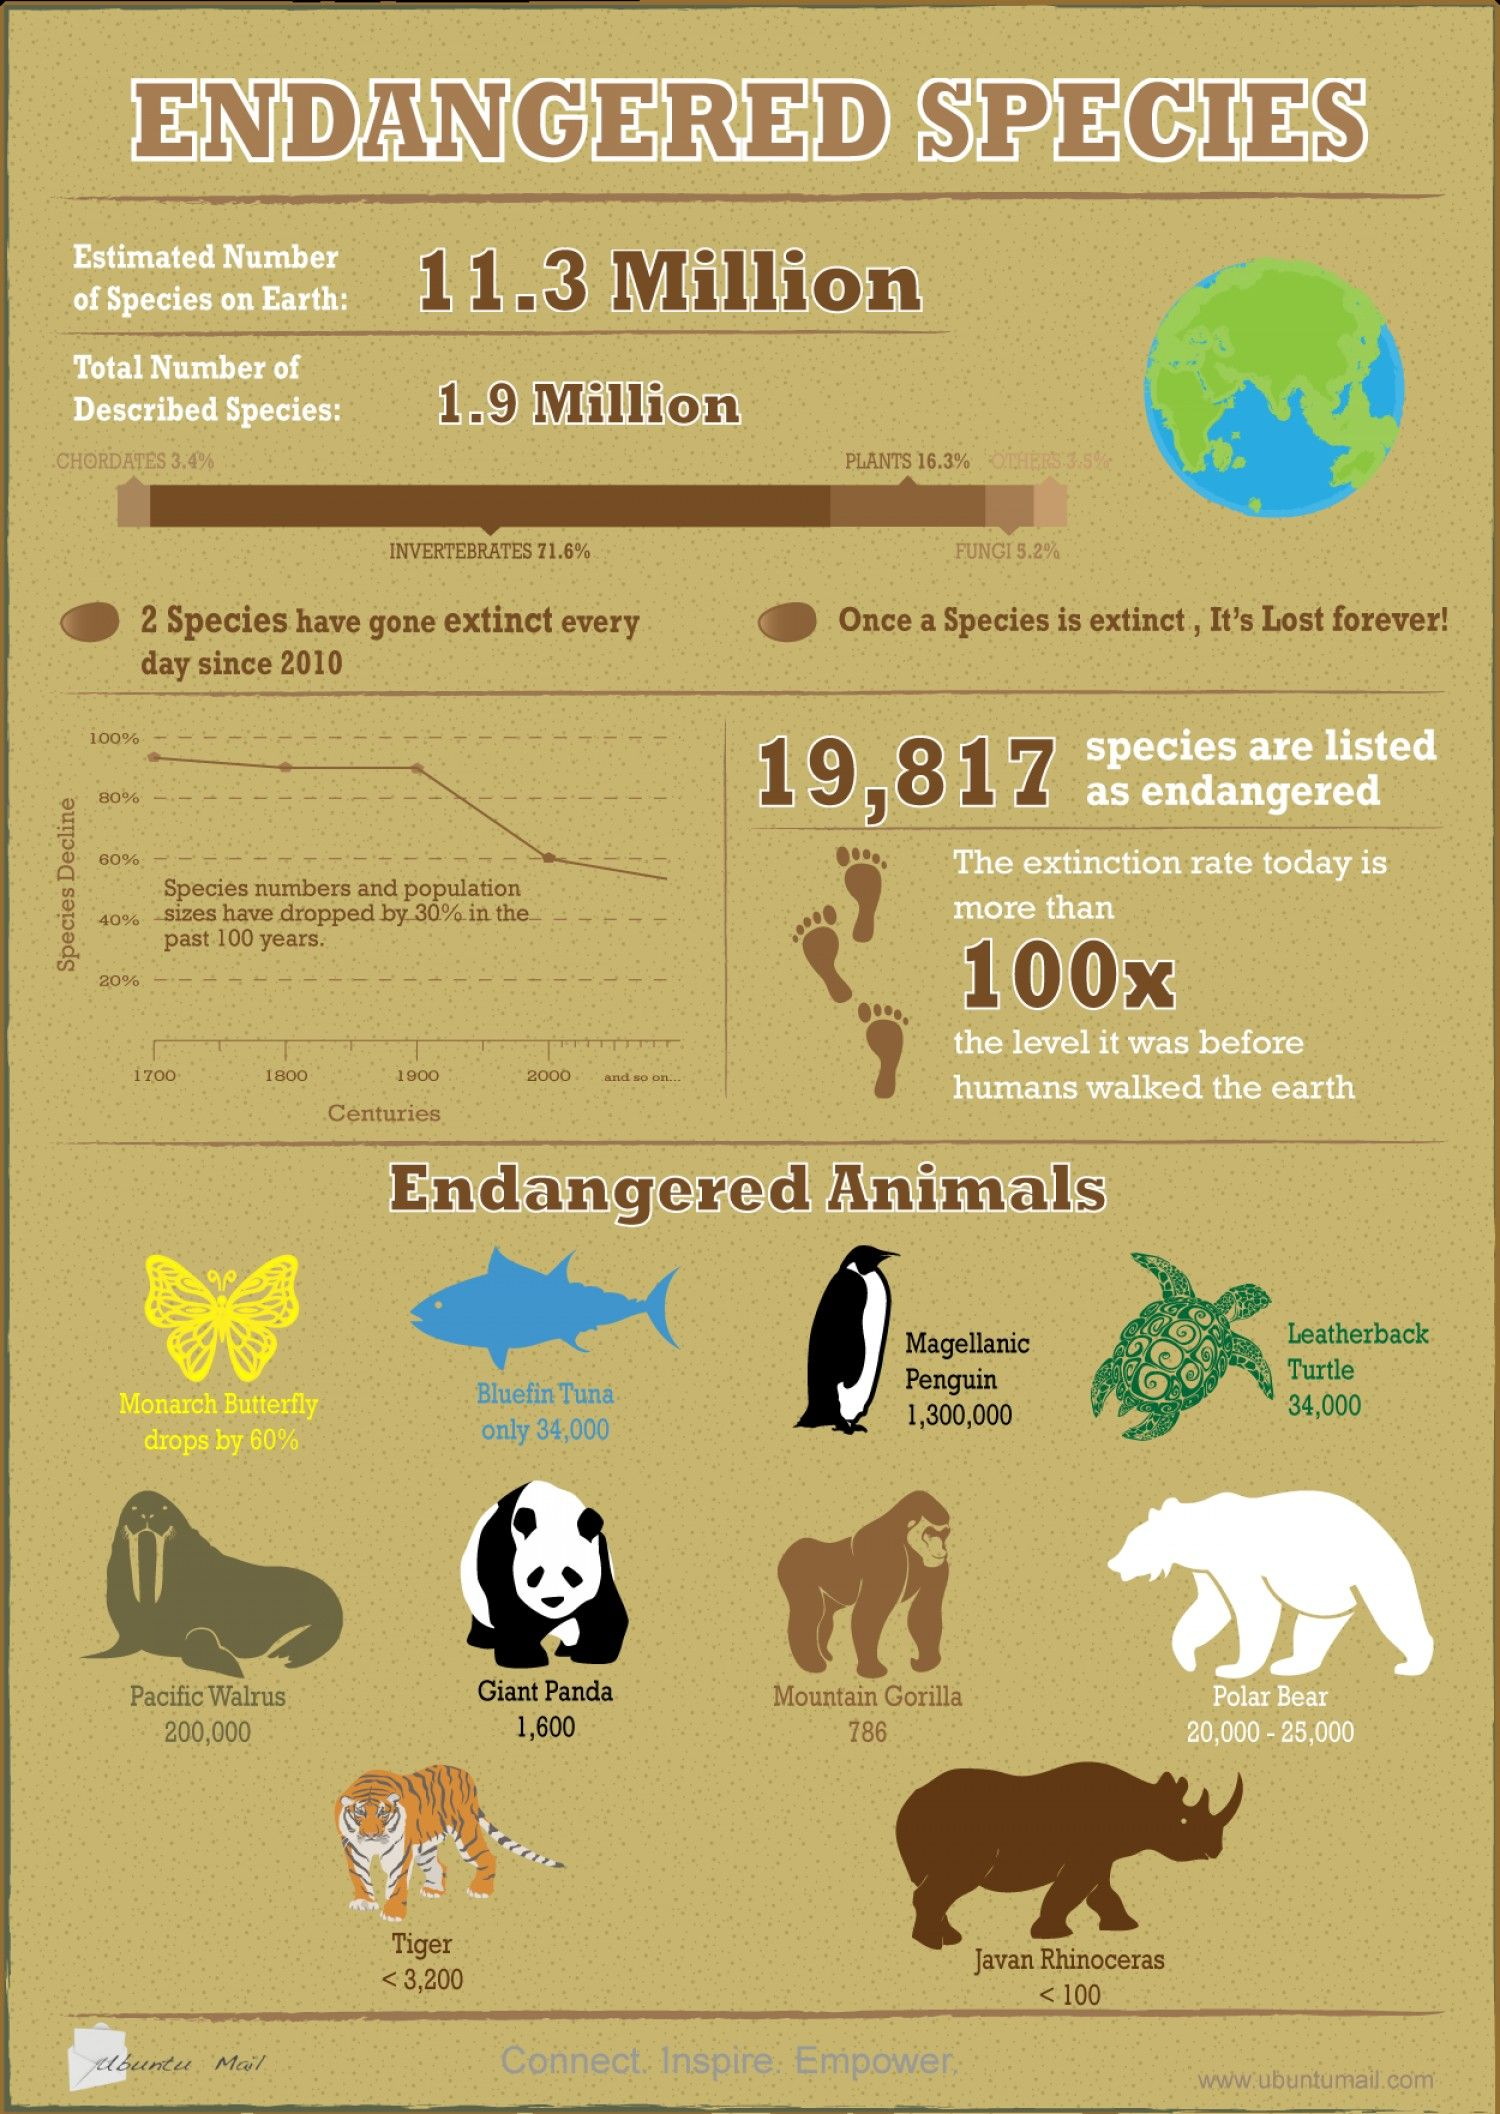 Endangered Species Infographic Infographic Endangered Animal Endangered Species Infographic Endangered Animals Endangered Species